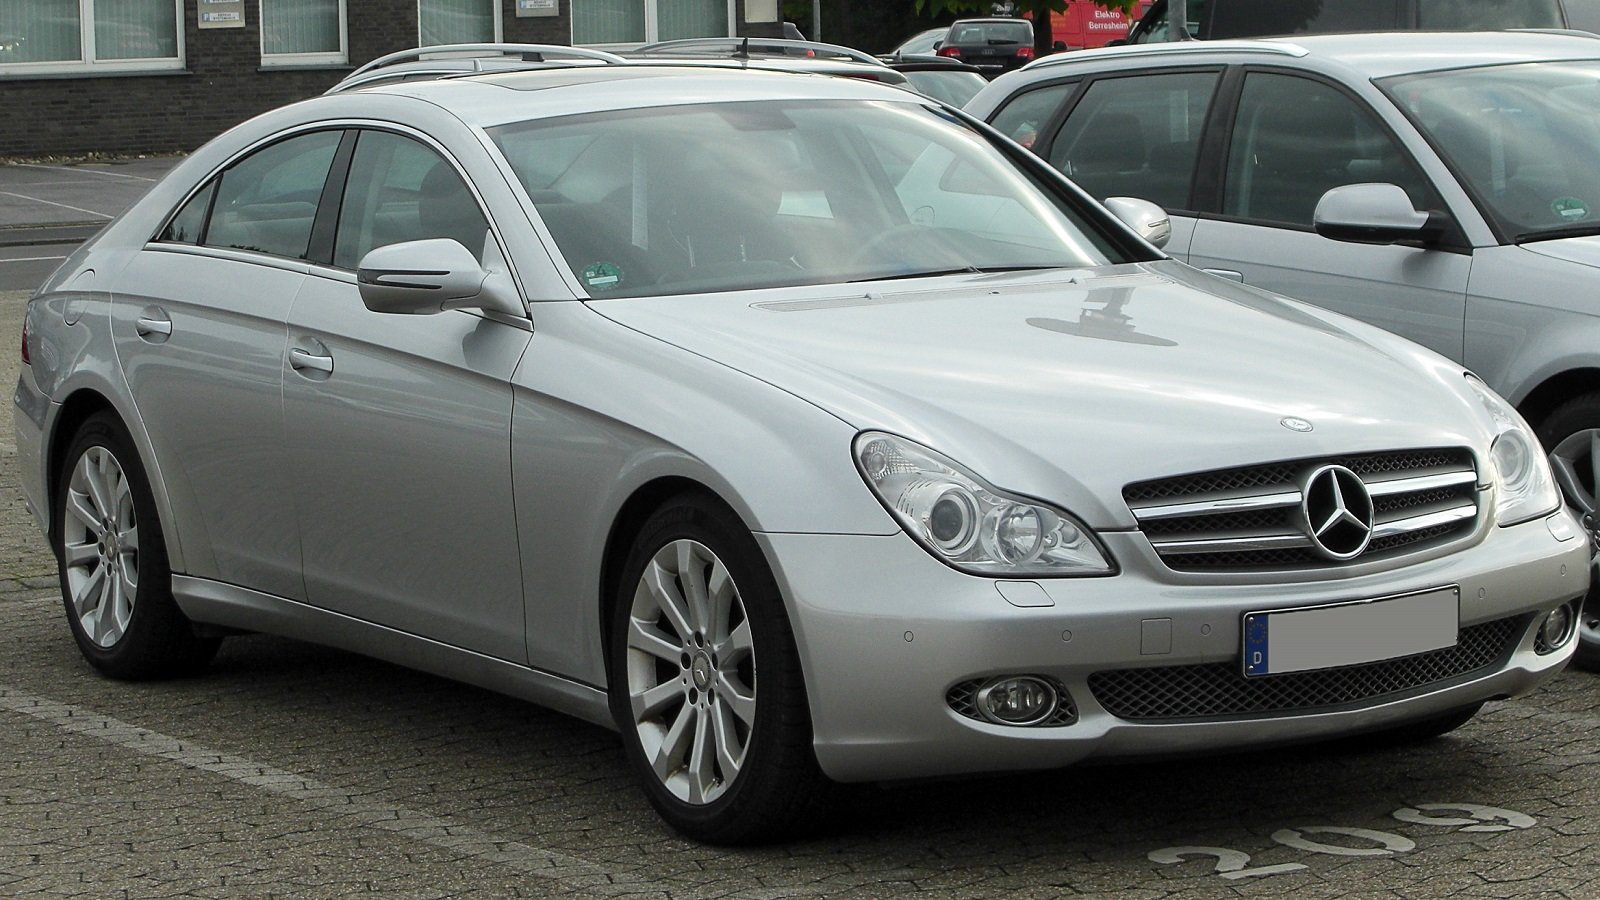 5 of the Best Used Mercedes-Benz Bargains